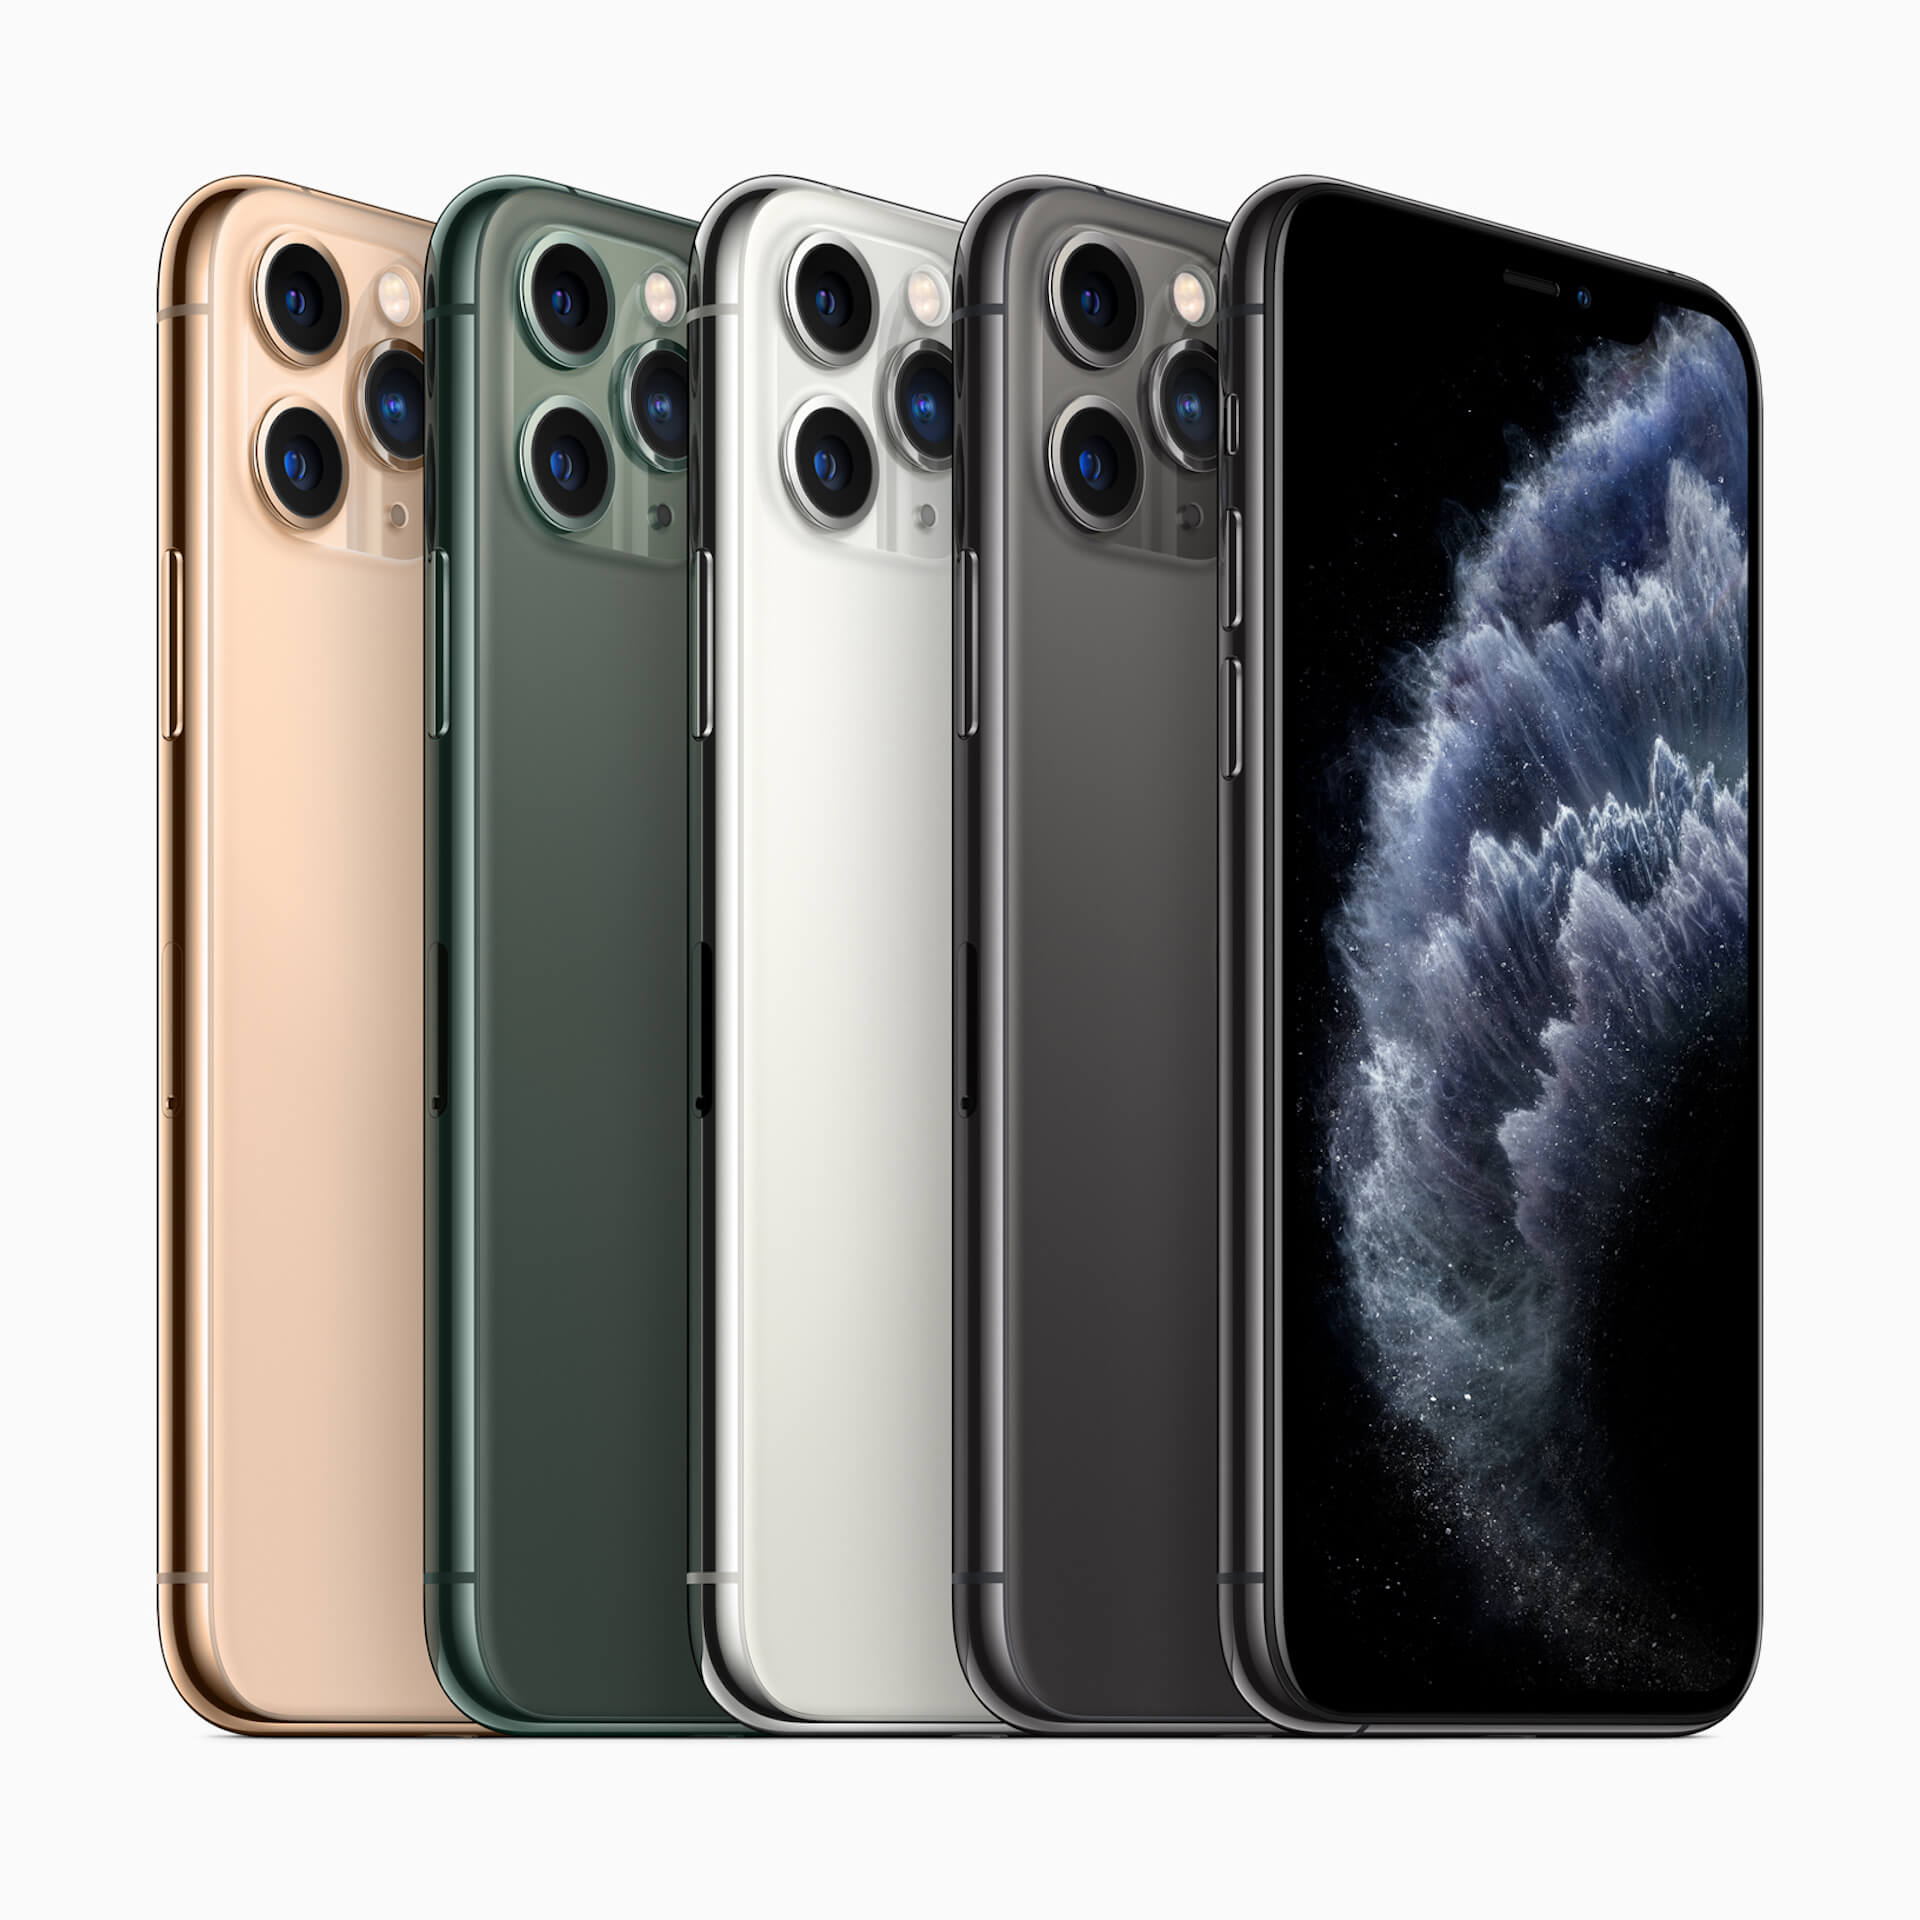 新型iPhoneで人気なのはiPhone 11 Pro/Pro Maxか、iPhone 11か? tech190918_apple_iphone11_main